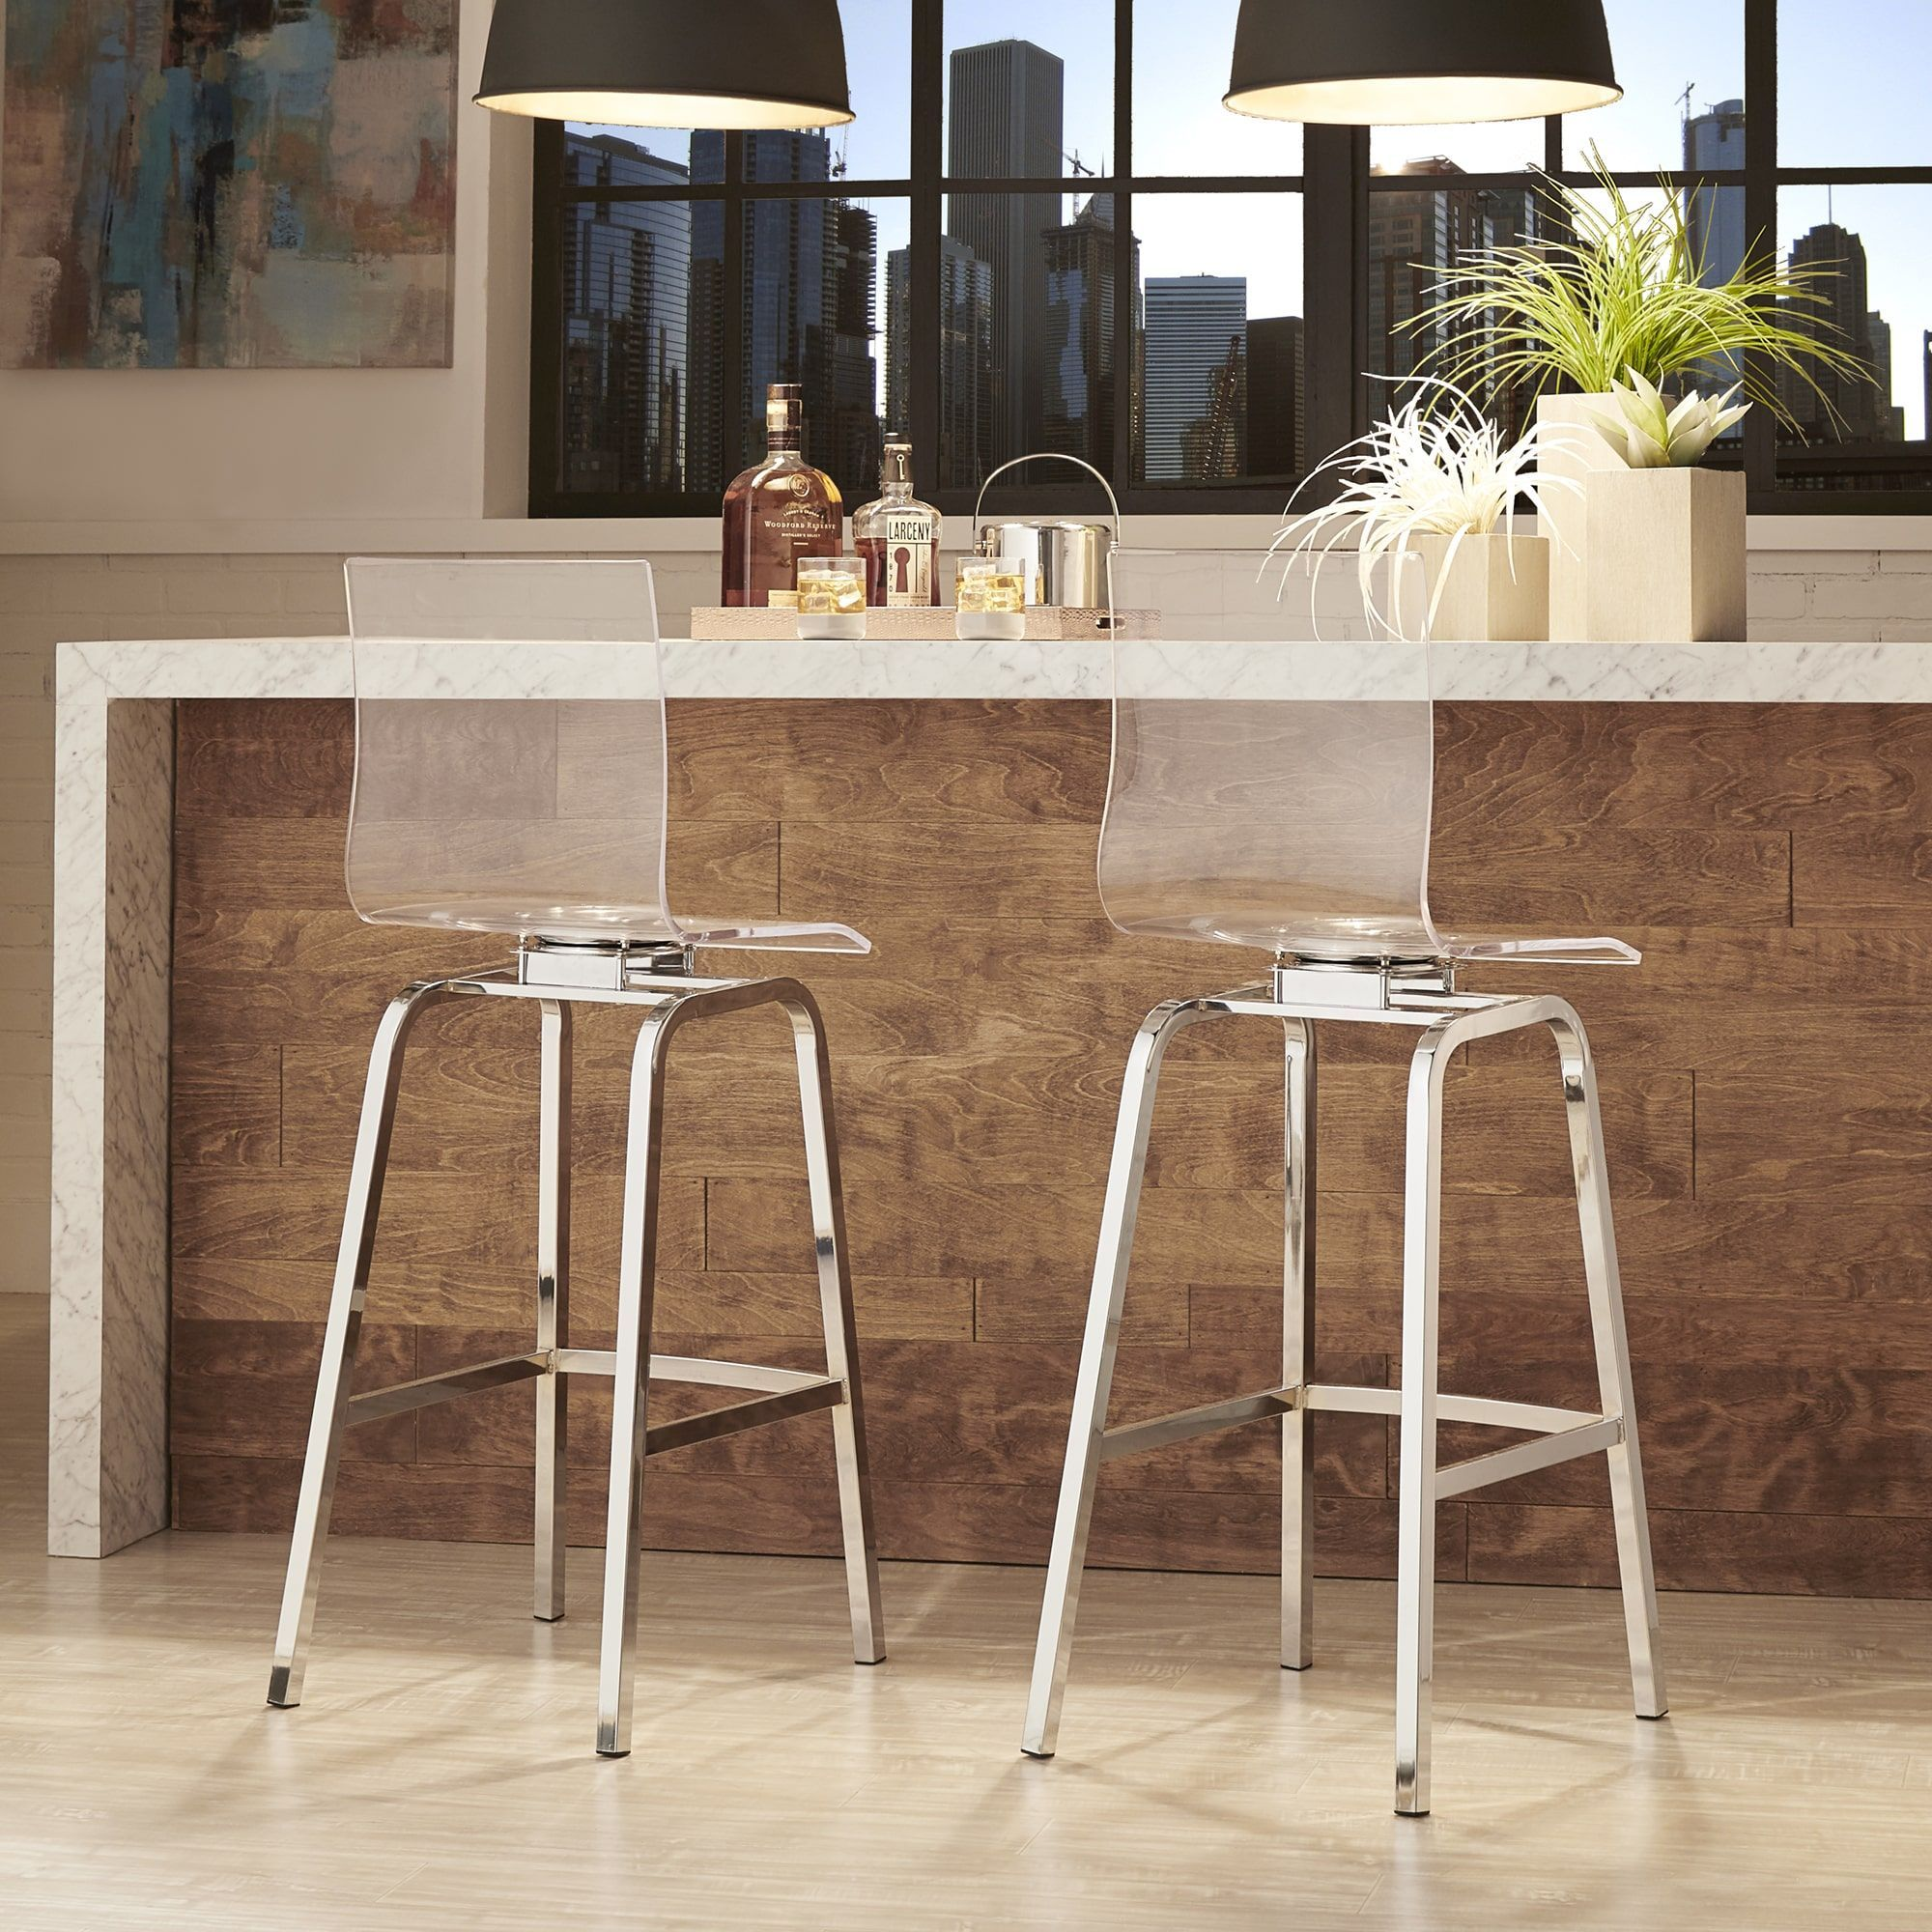 Inspire Q Miles Clear Acrylic Swivel Bar Stools Set Of 2 Chrome